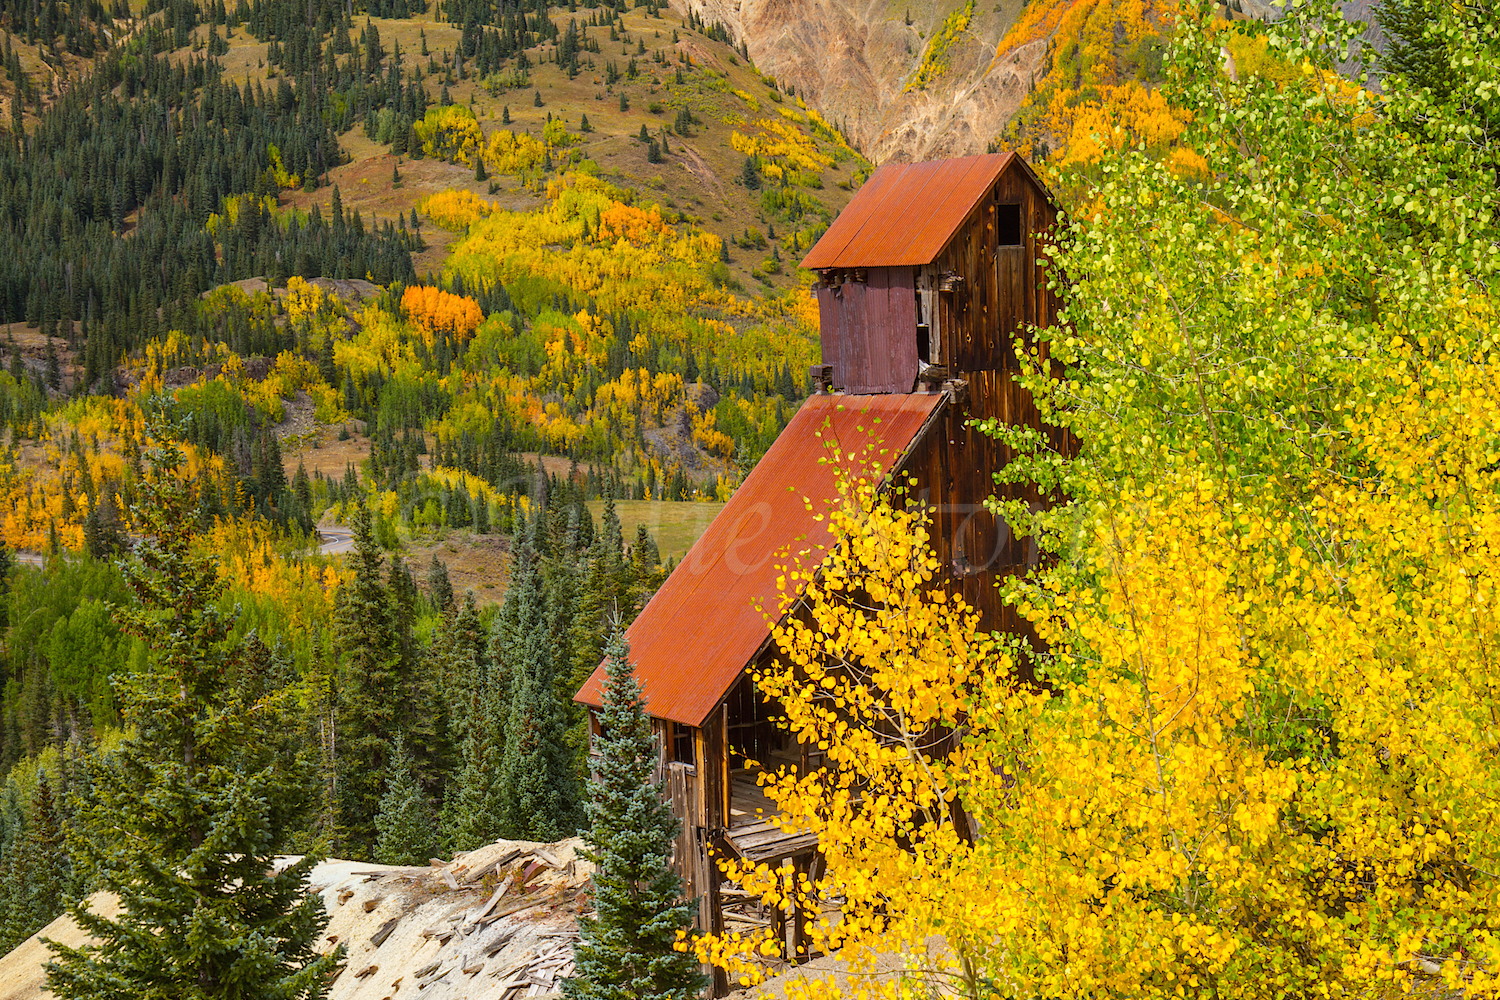 Red Mountain Fall Color, Image #9780